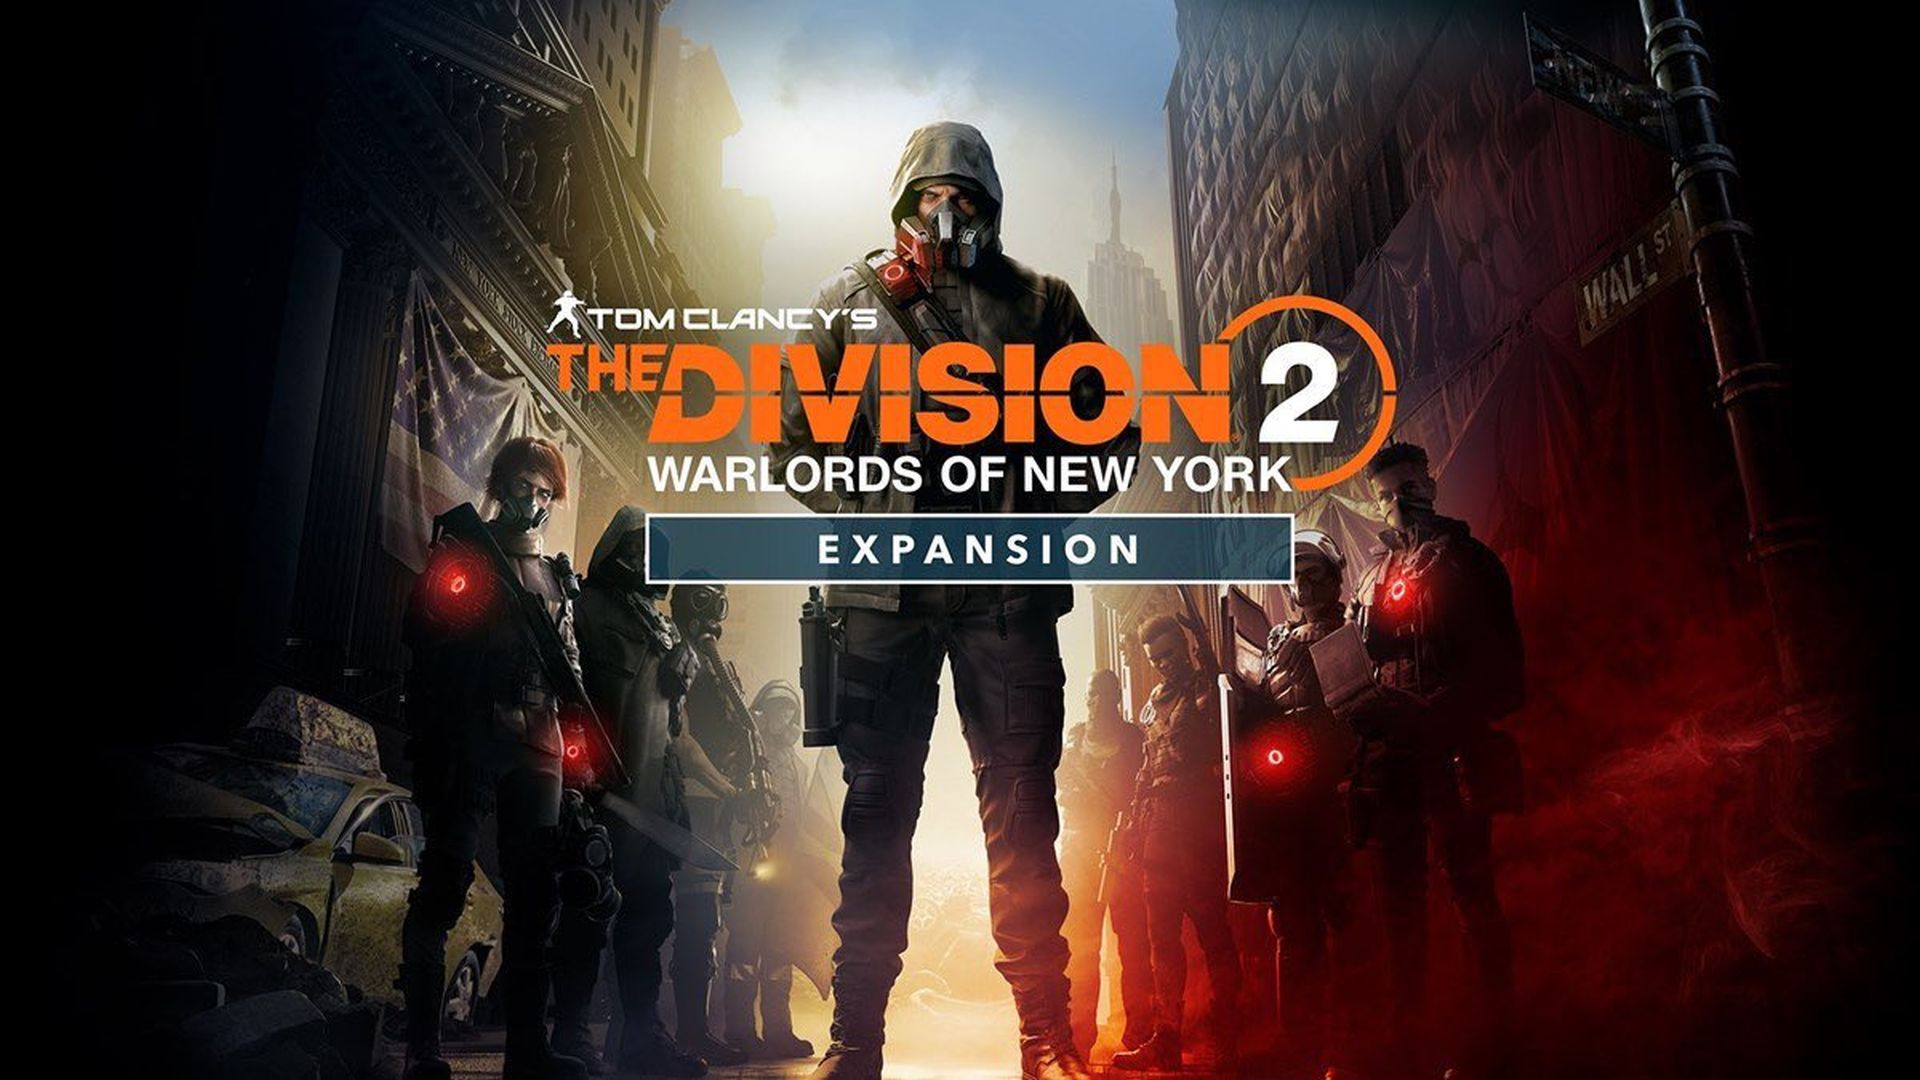 The Division 2 Ano 2 Warlords de Nova York